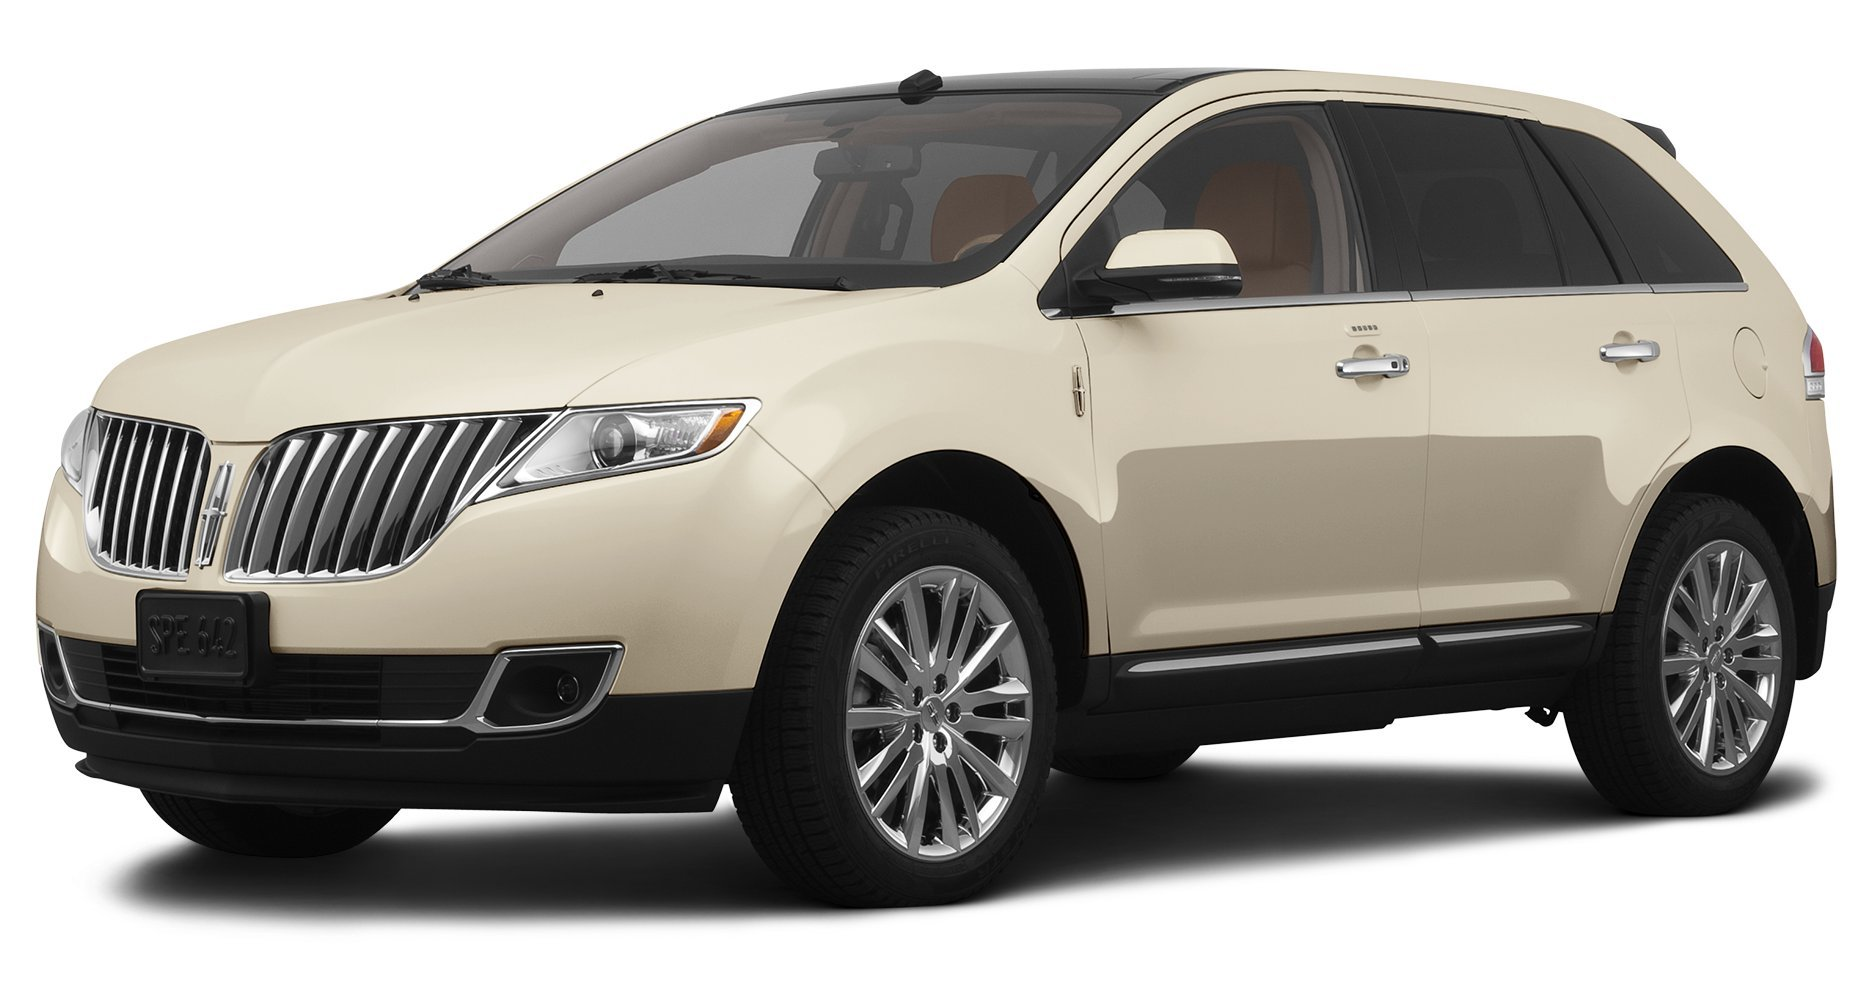 2013 lincoln mkx reviews images and specs vehicles. Black Bedroom Furniture Sets. Home Design Ideas